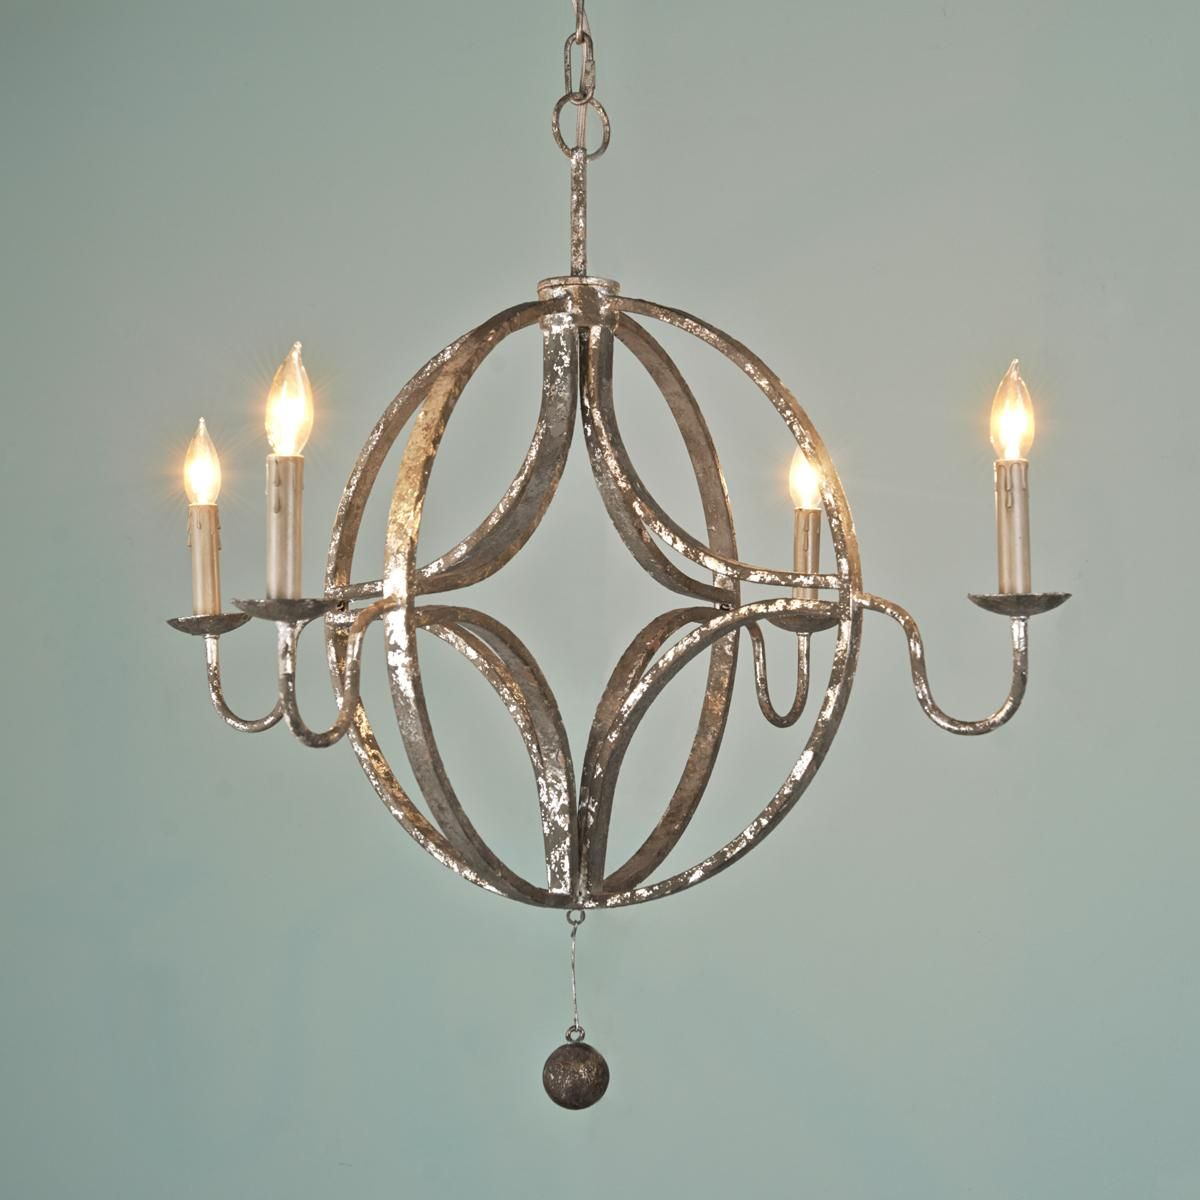 Rustic Celestial Chandelier In 2019 For The Home